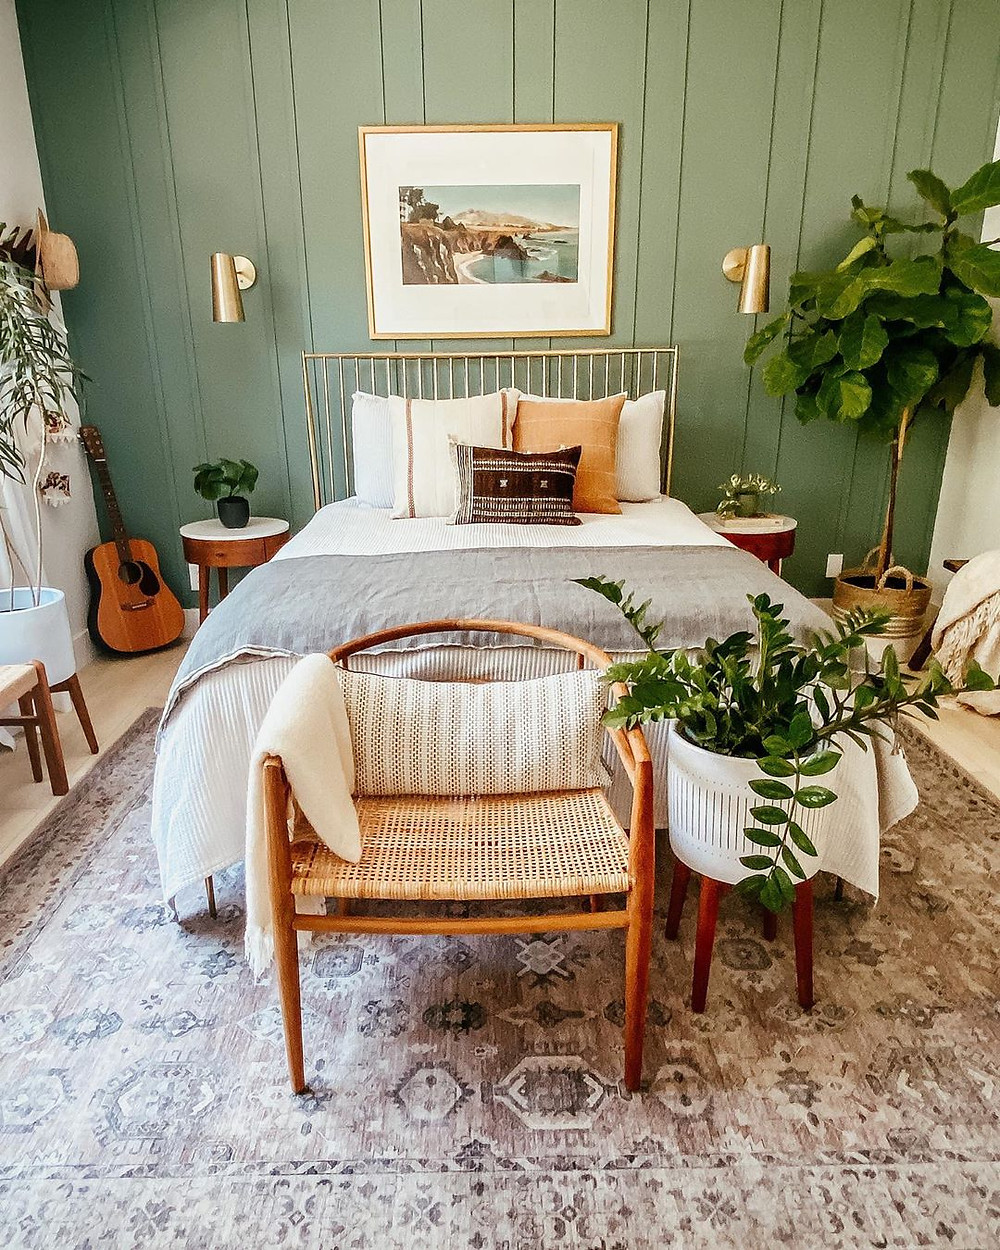 stunning boho bedroom with green walls, golden bedroom frame and plants